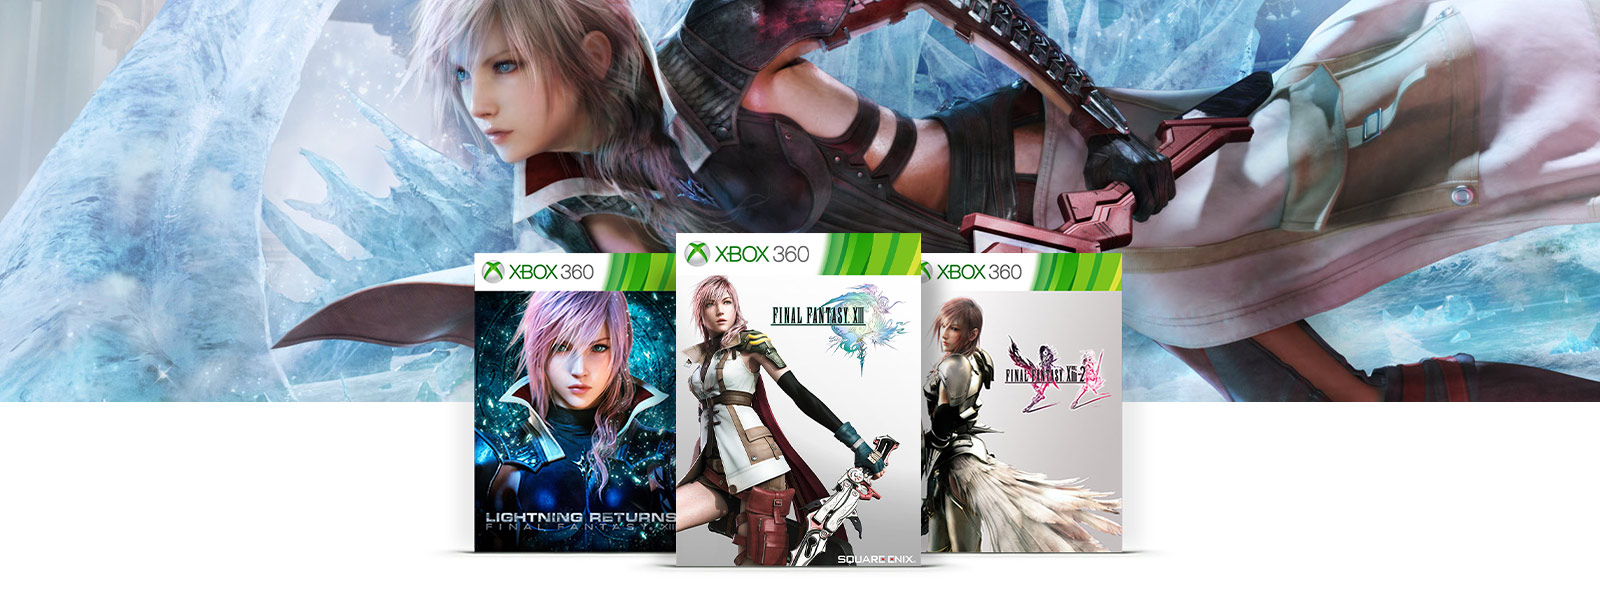 Förpackningsgrafik för FINAL FANTASY XIII, FINAL FANTASY XIII-2 och LIGHTNING RETURNS FINAL FANTASY visas ovanpå figuren Lightning